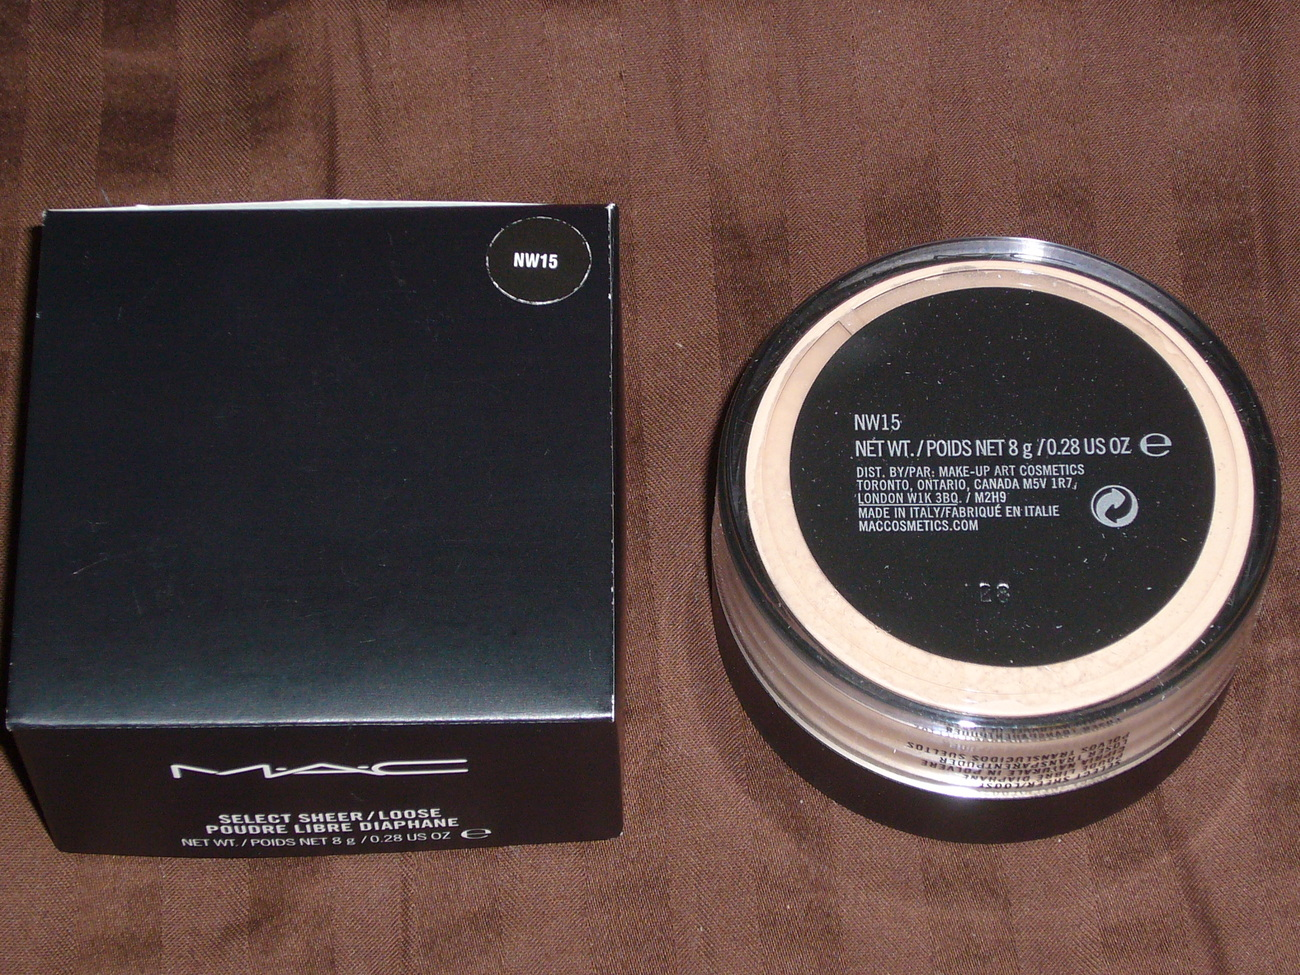 MAC Cosmetics Select Sheer / Loose Powder - NW15